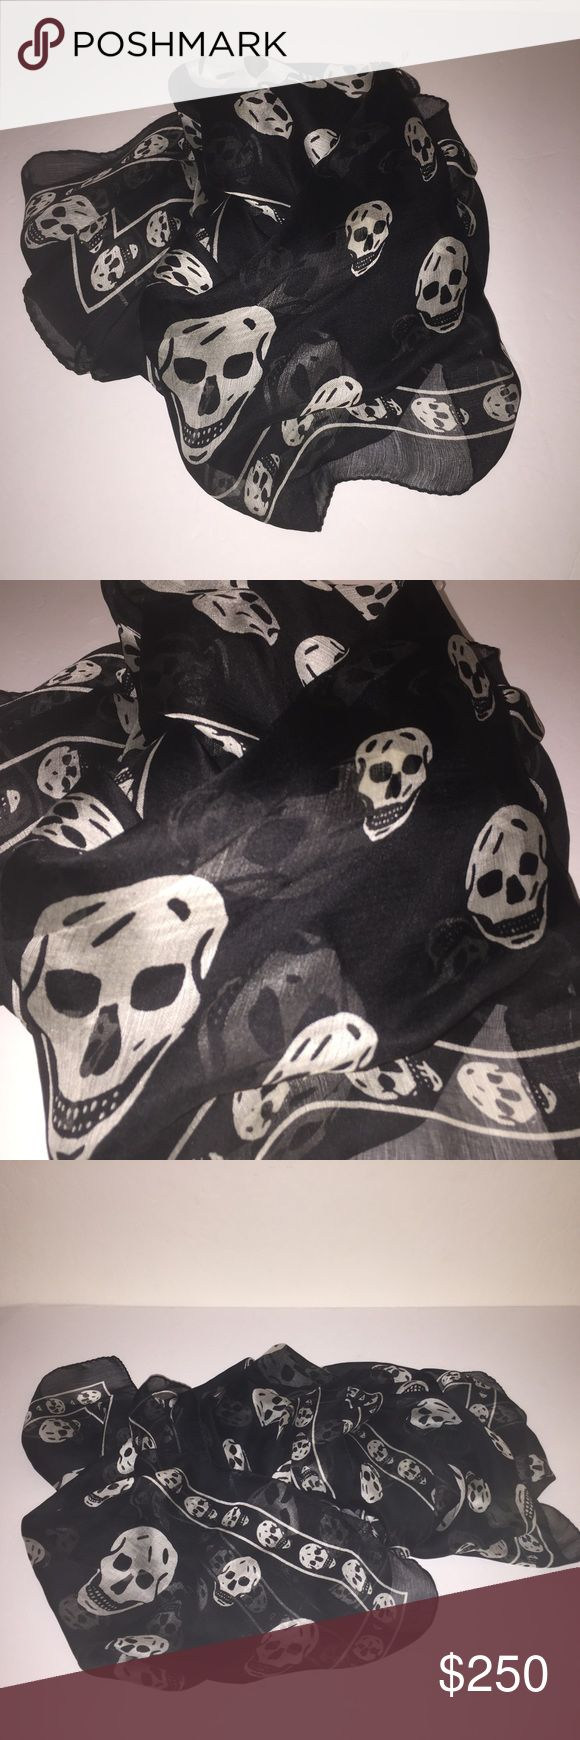 Alexander Mcqueen Black Silk Scarf Wrap Shawl New without tags 100% authentic unisex Mcqueen silk skull scarf , sorry no trades send offer Alexander McQueen Accessories Scarves & Wraps